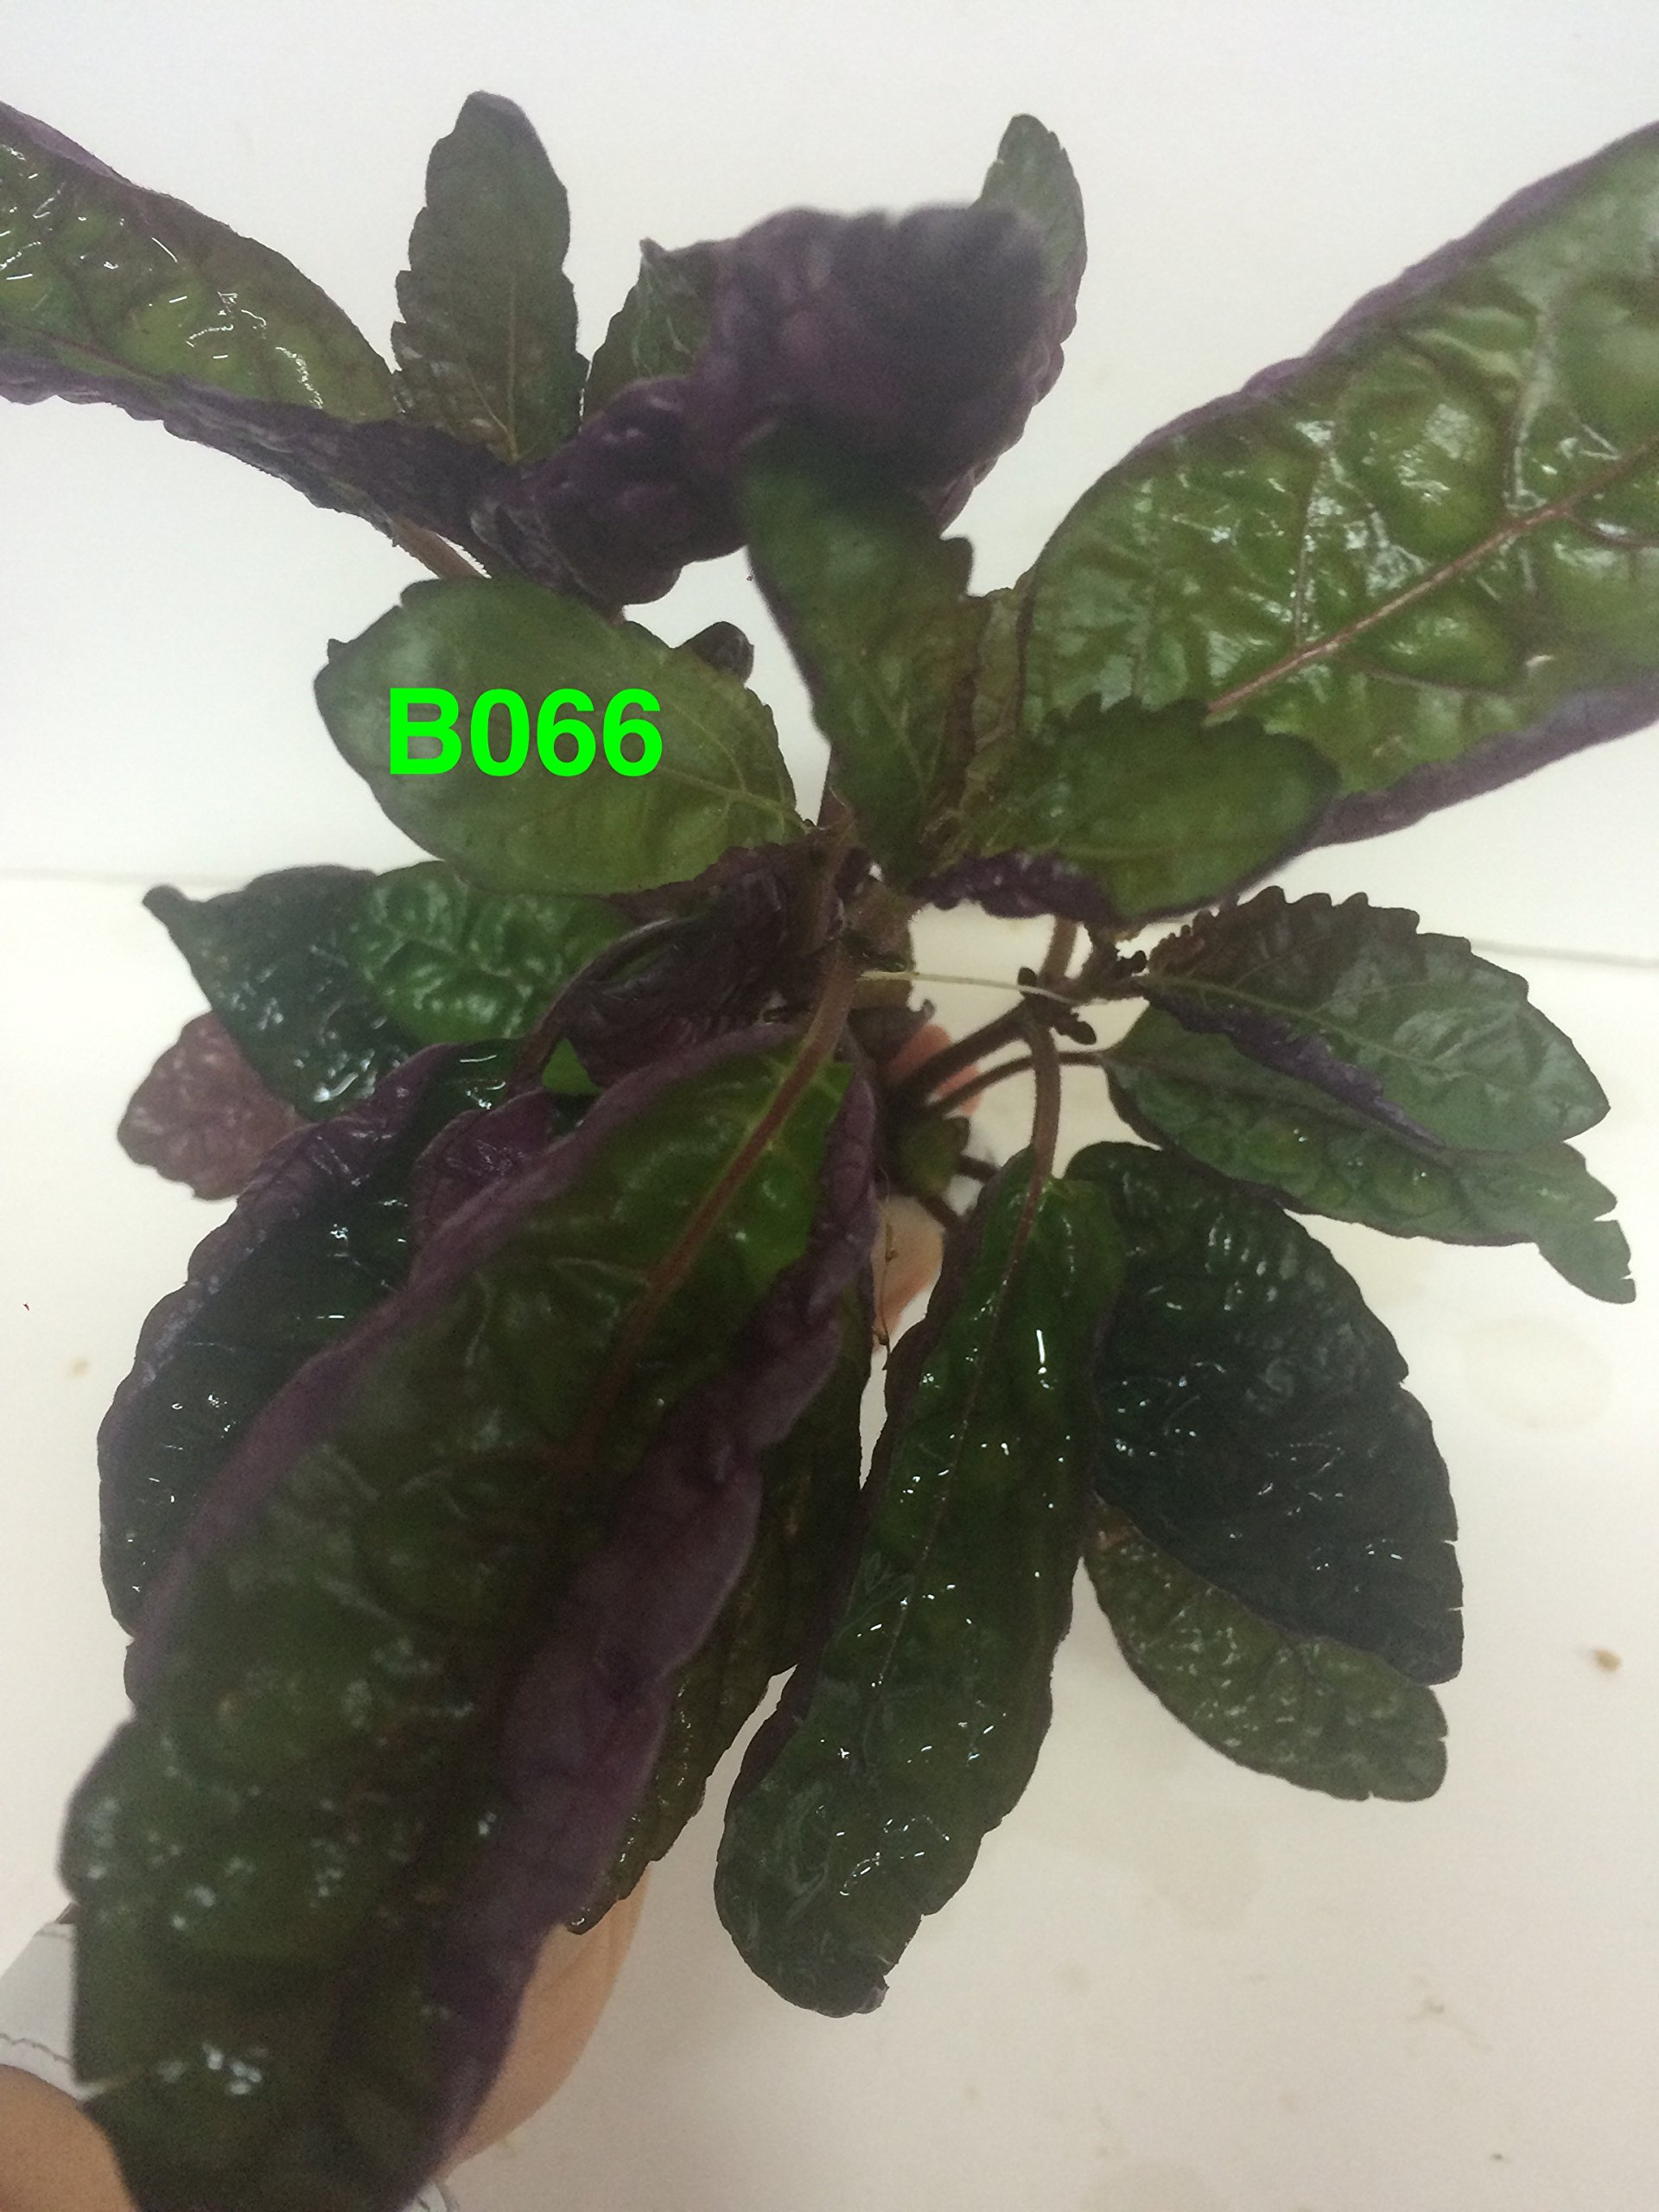 Exotic Live Aquatic Plant for Fresh Water Hemigraphis colorata Bundle B066 By Jyco **Buy 2 GET 1 Free by Jayco (Image #3)